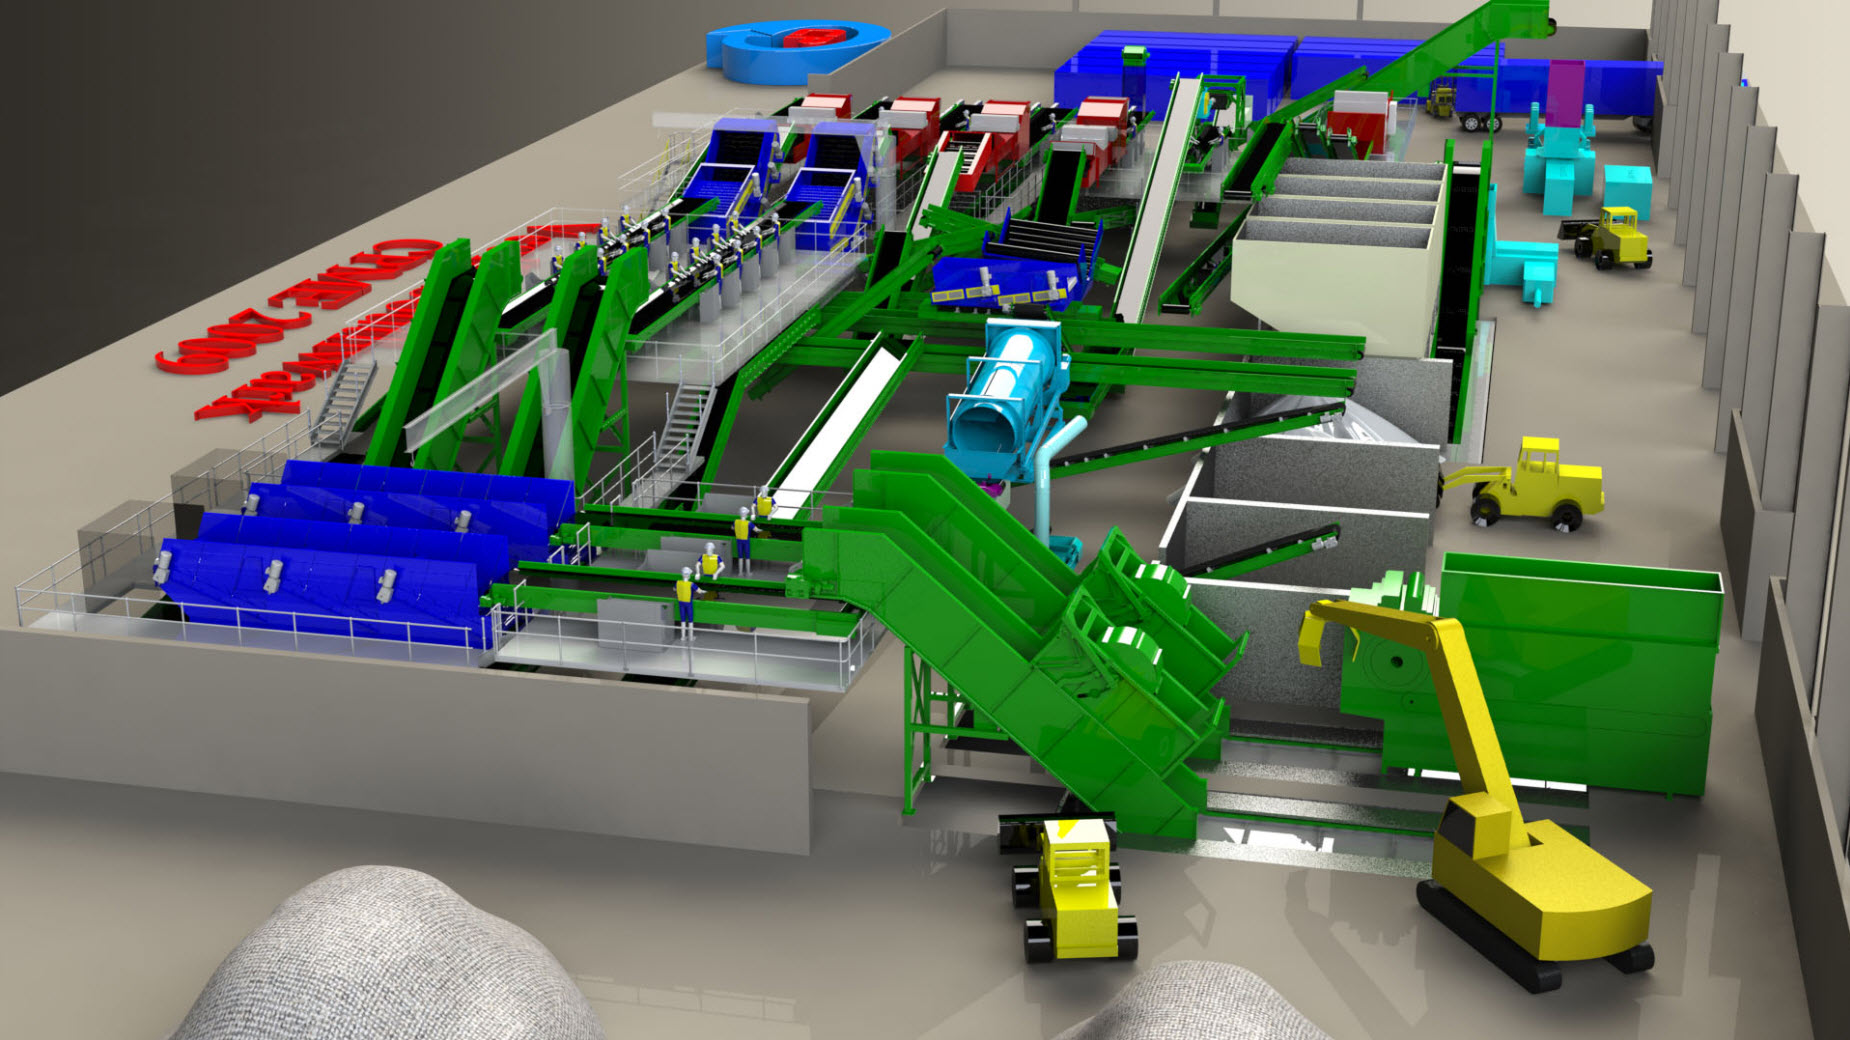 CP Manufacturing: Efficient Engineering and Recycling Manufacturing